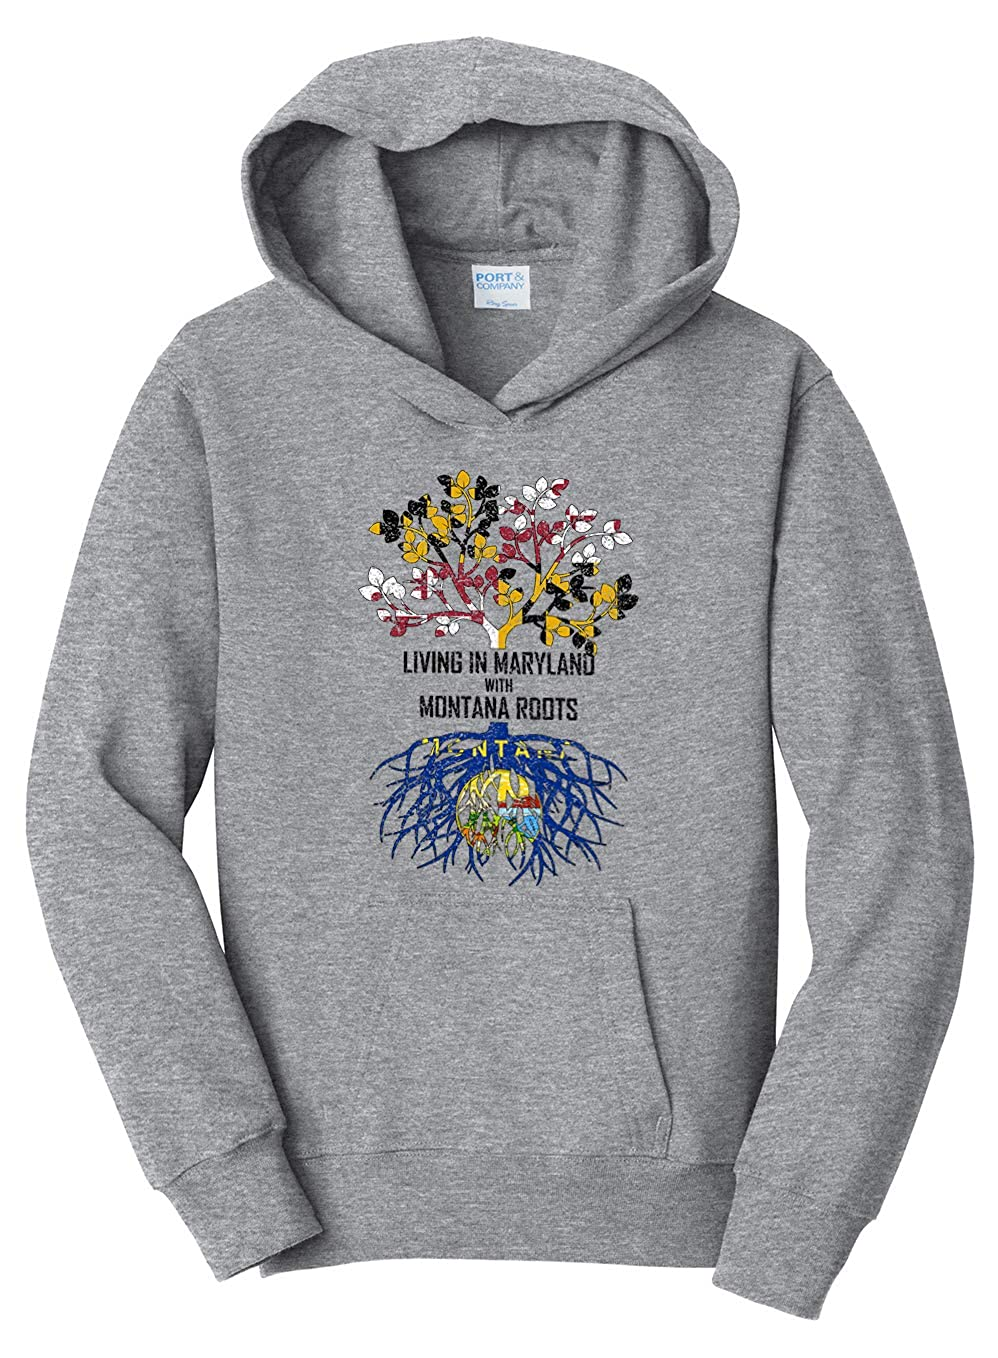 Tenacitee Girls Living in Maryland with Montana Roots Hooded Sweatshirt